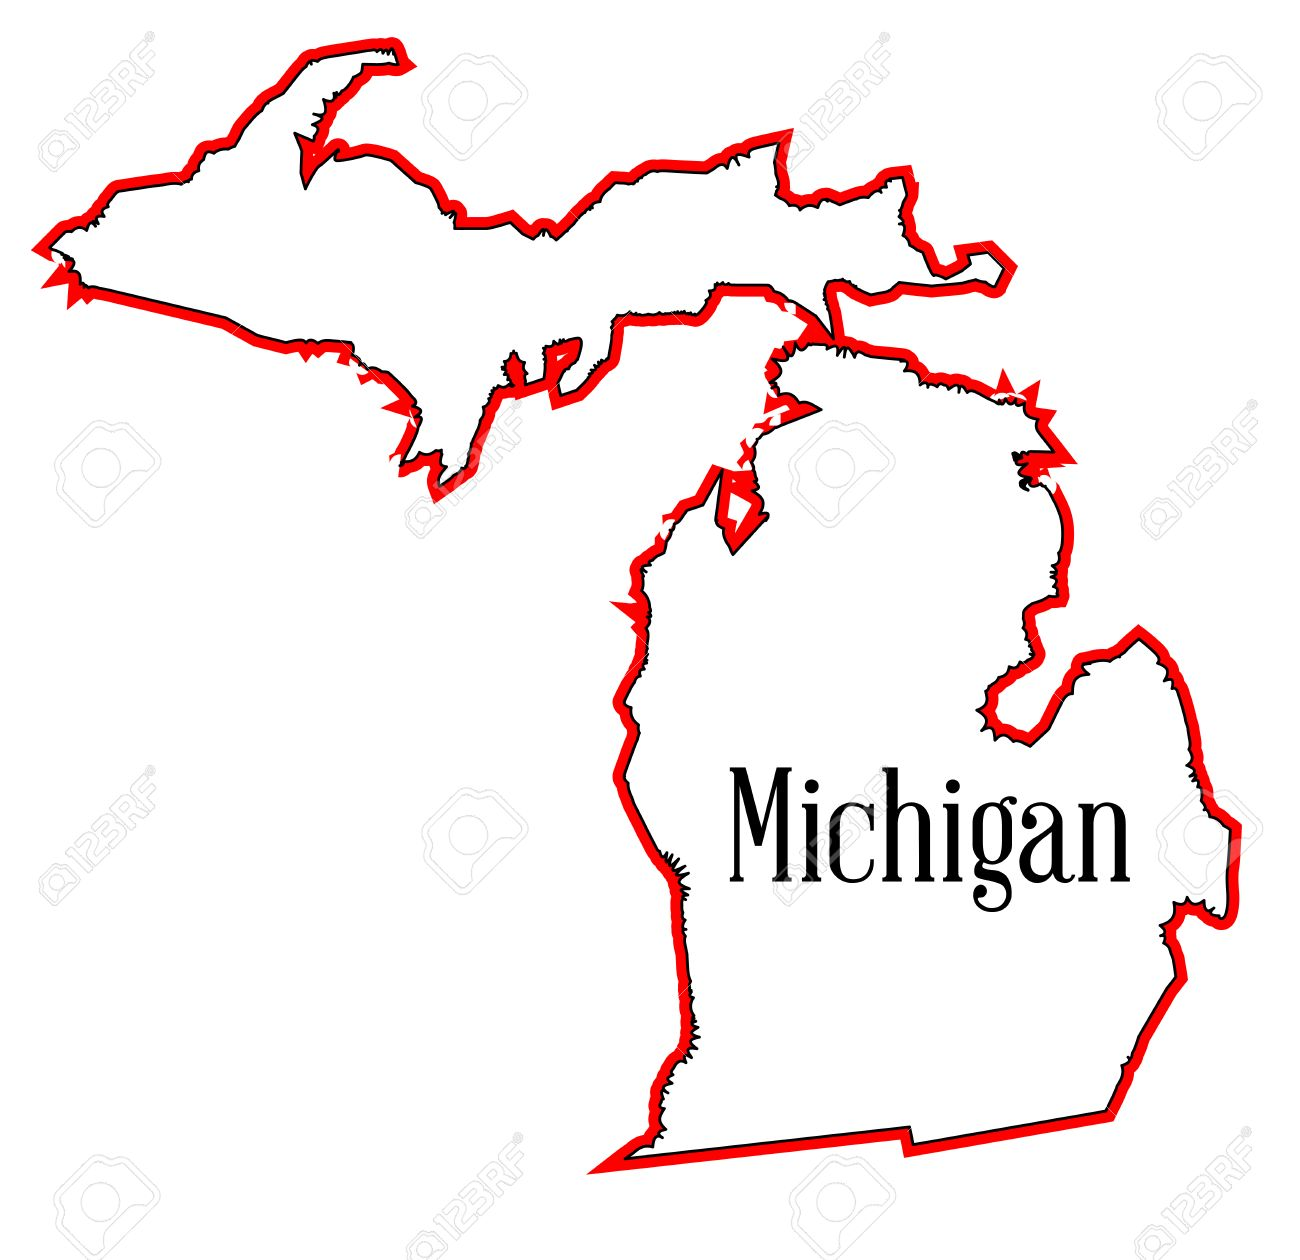 Outline map of the state of Michigan.